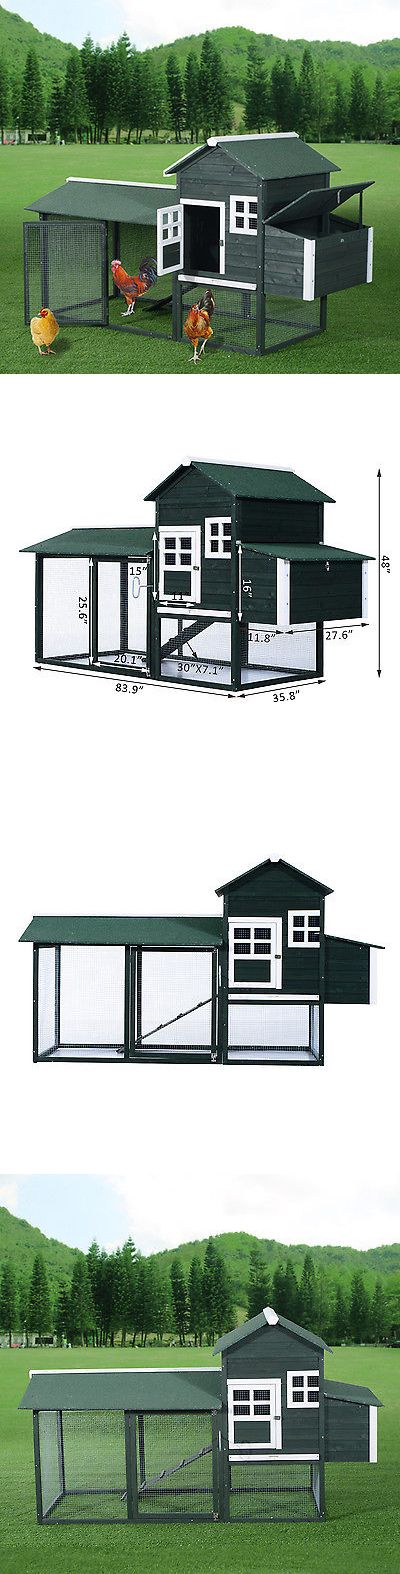 Backyard Poultry Supplies 177801: Chicken Coop 84? Wooden Backyard Nest Box House Hen Poultry Wood Hutch Nesting BUY IT NOW ONLY: $249.99